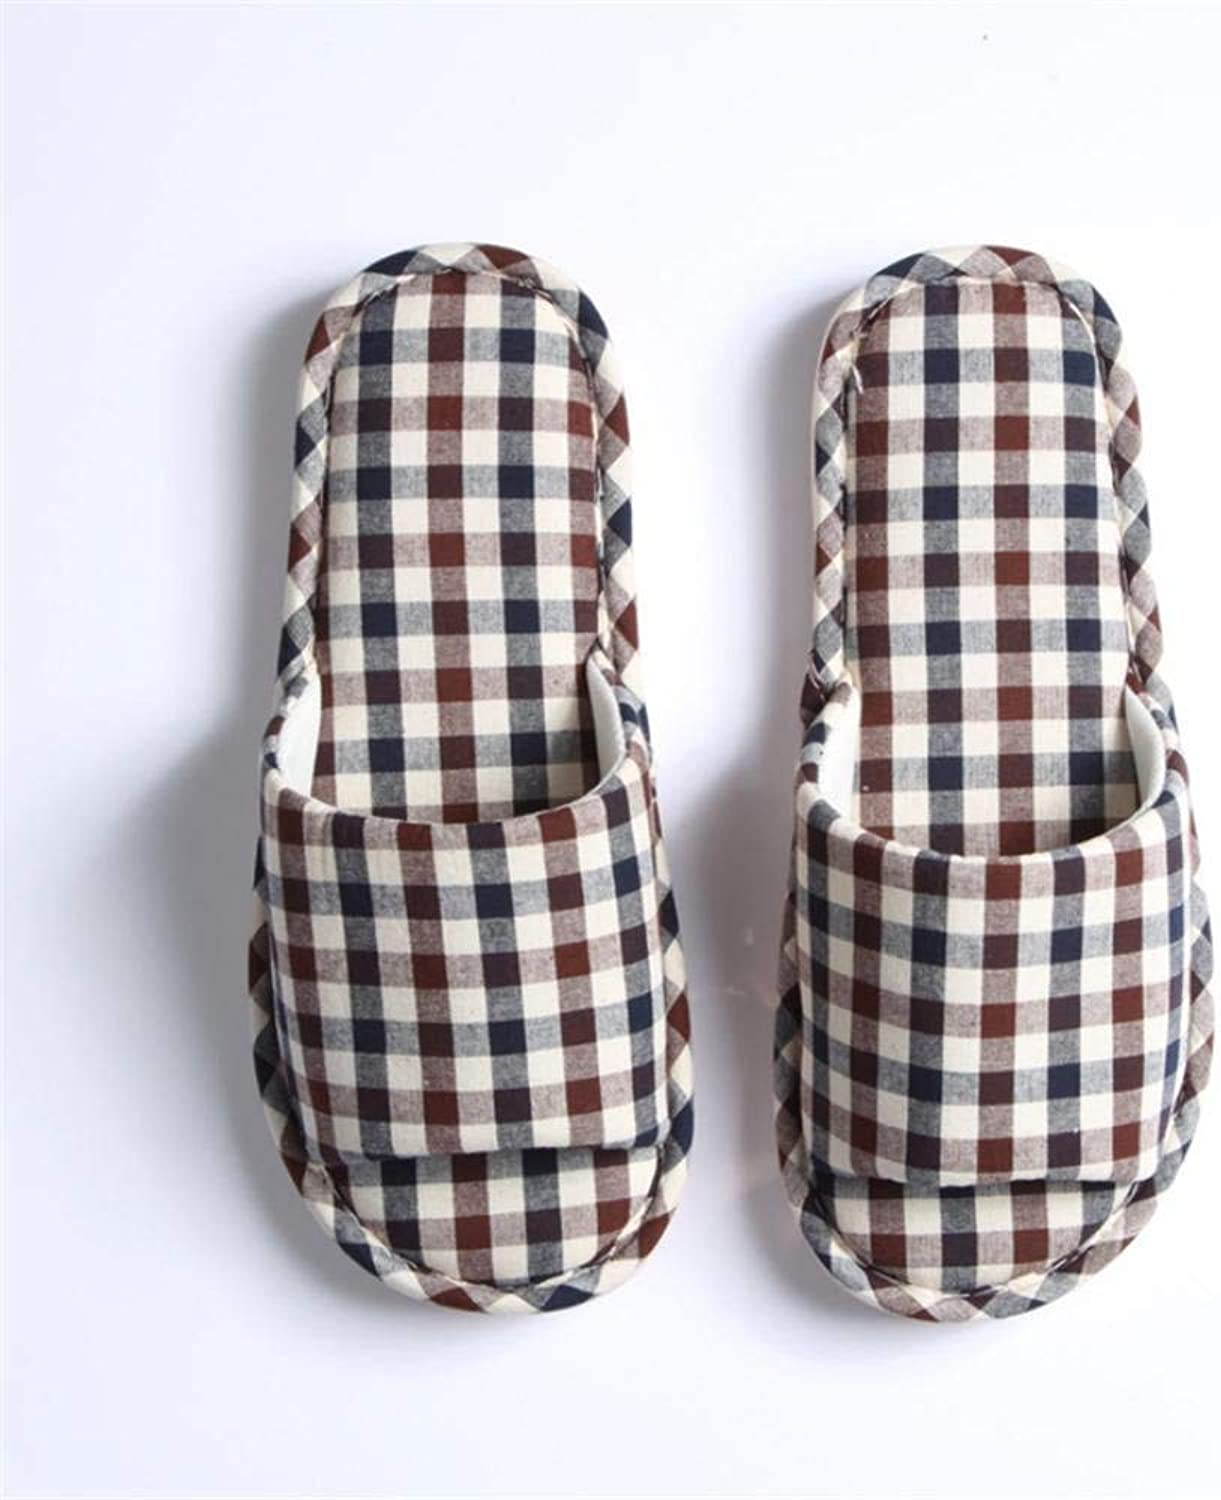 Comfortable Slipper Home Interior Non-slip Men's Casual Warm Slippers Brown bluee Soild color Personality Creativity Quality